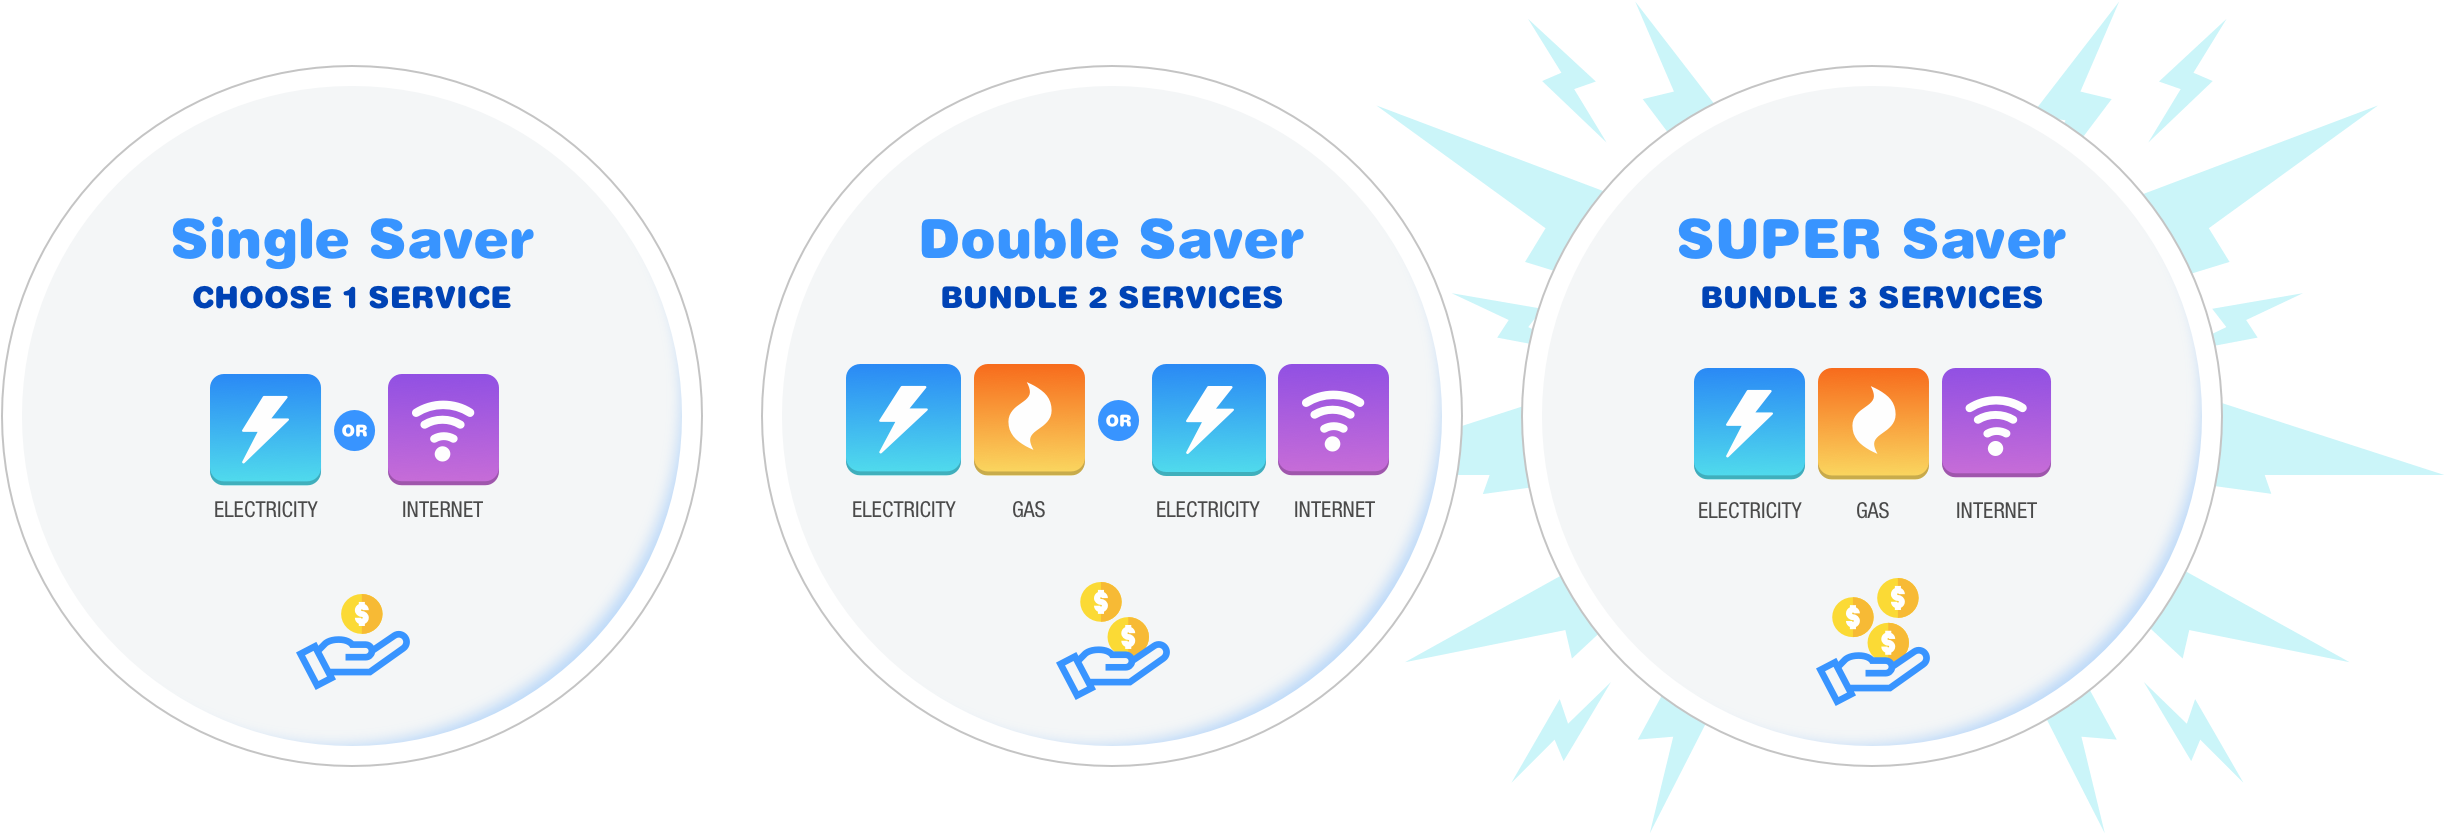 Electricity Gas Internet Provider Sumo The Real Truth Behind Household Power Savers Eep More You Bundle Save